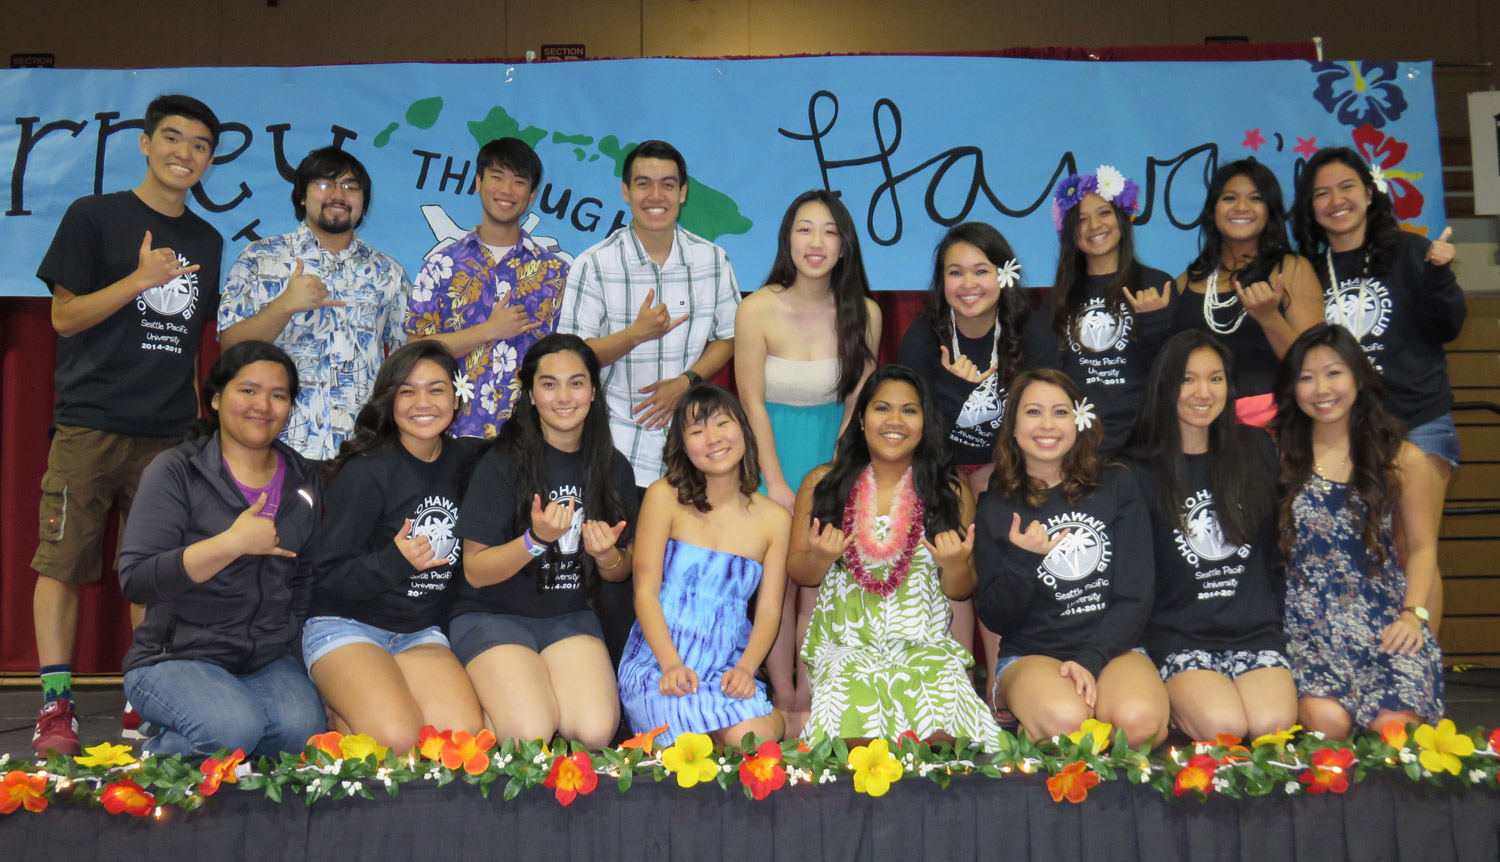 Members of the Hawaii club at Seattle Pacific University